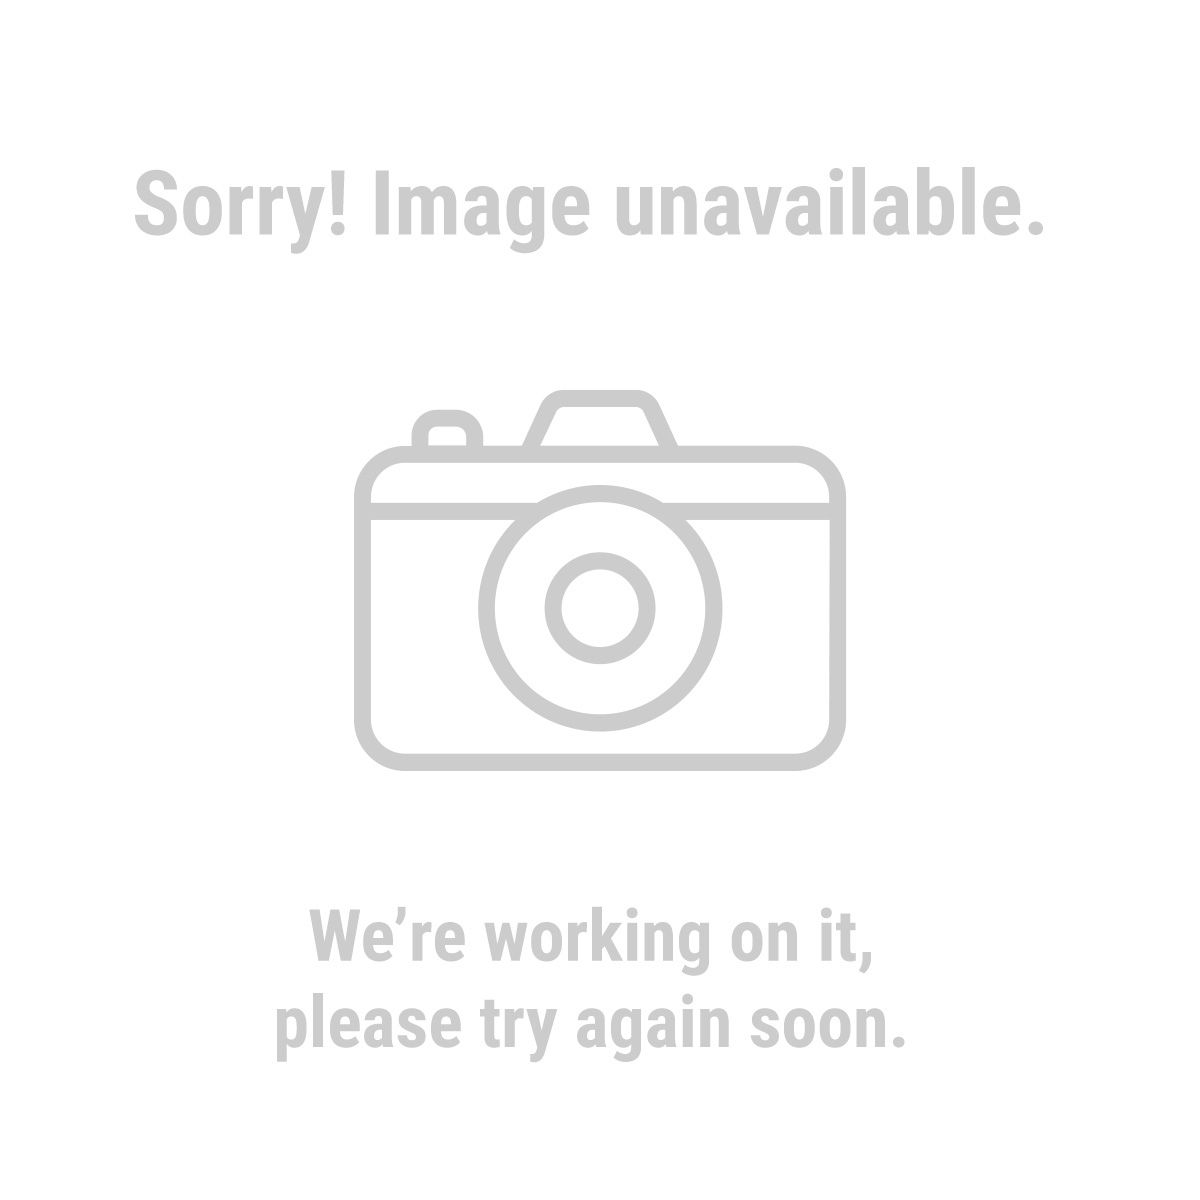 hight resolution of hf wireless winch remote the garage journal board atv winch wiring diagram badland remote wiring diagram